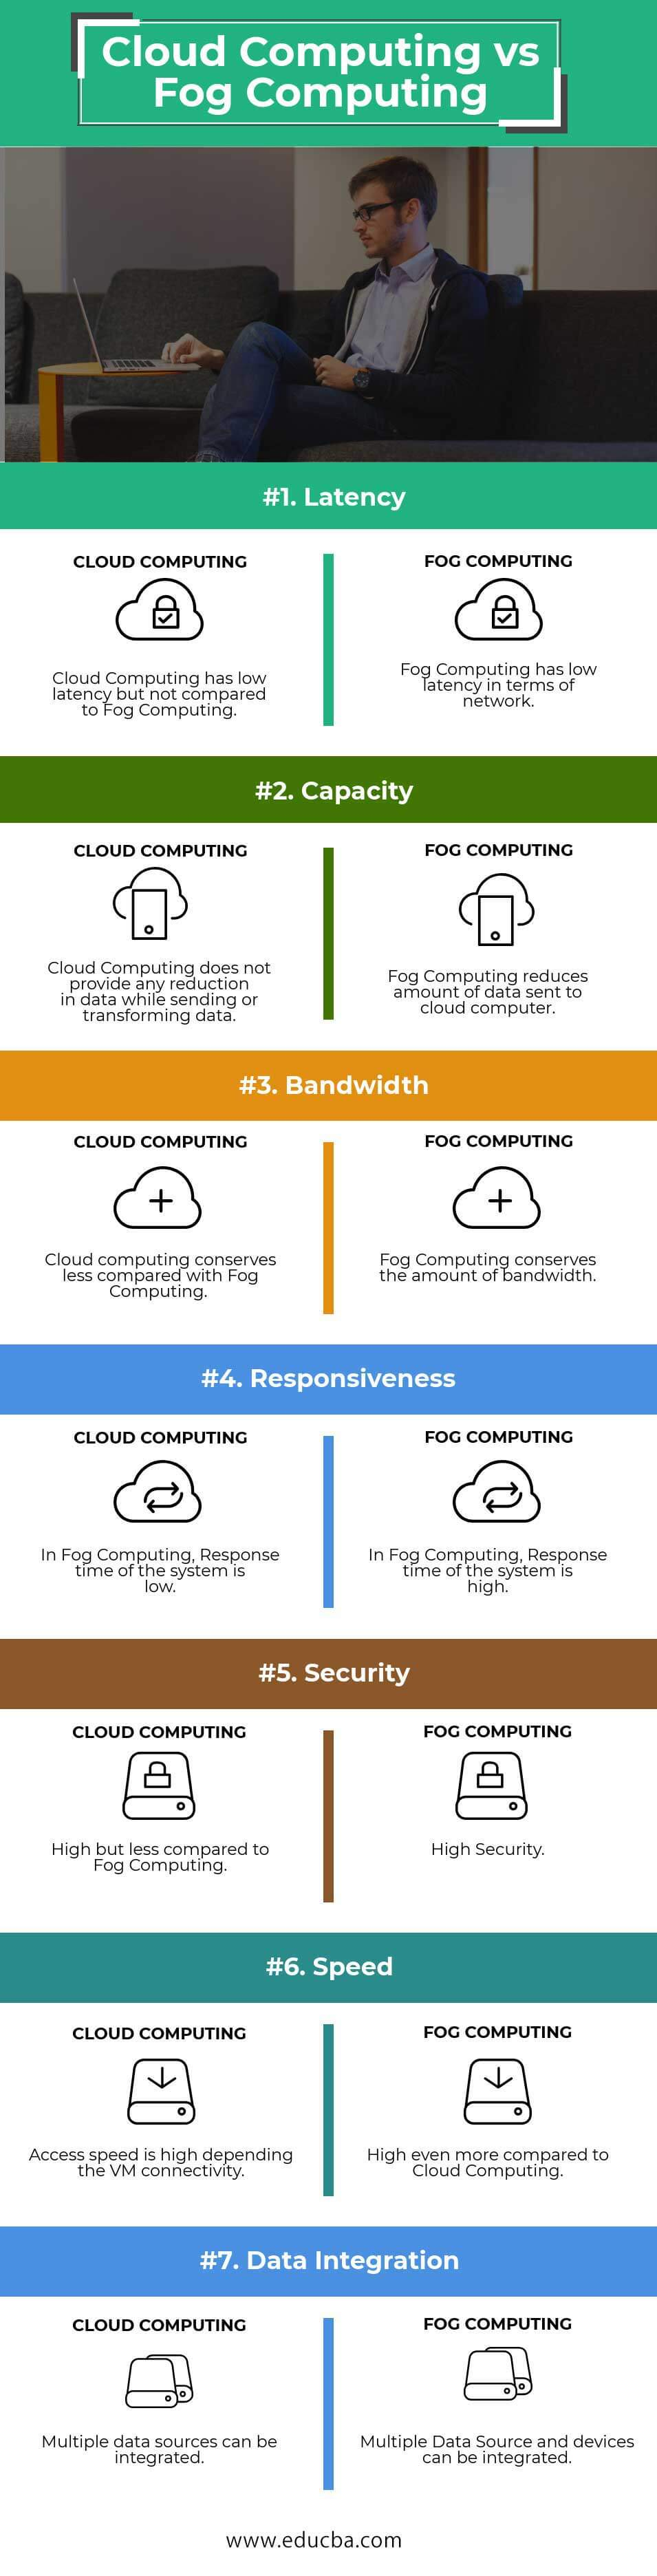 Cloud Computing vs Fog Computing